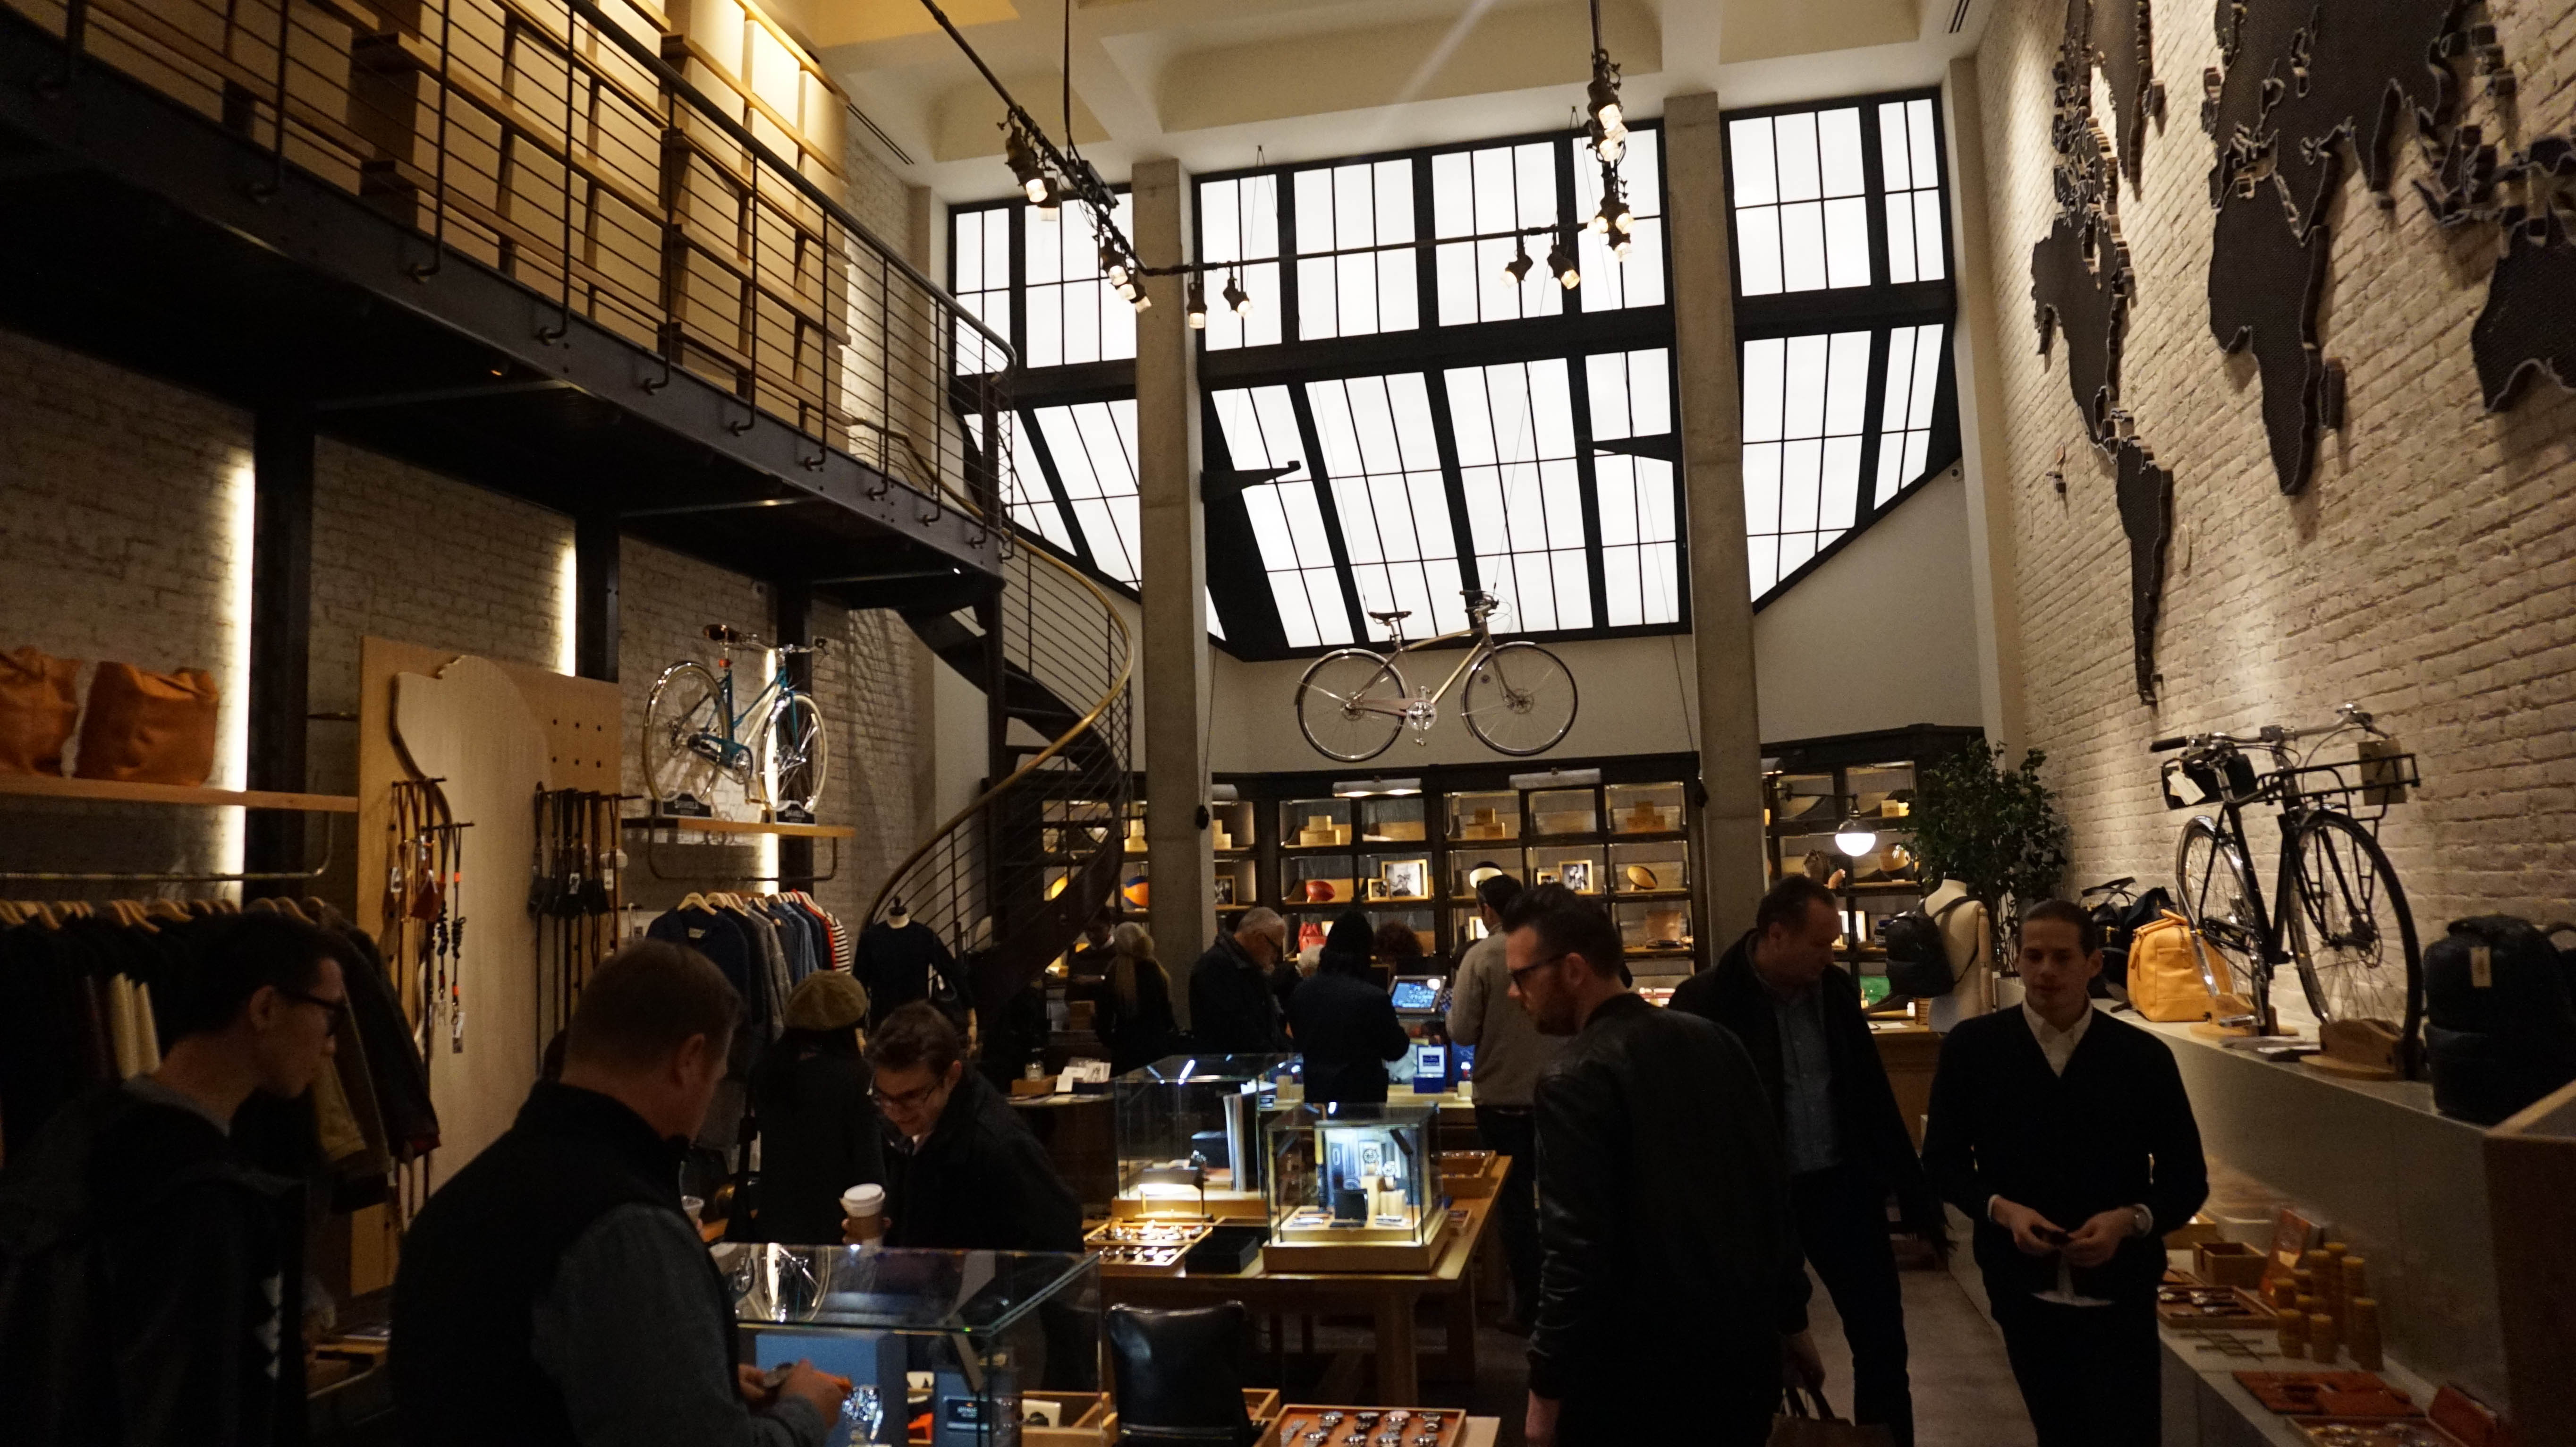 Shinola shoppers 11-8-2014